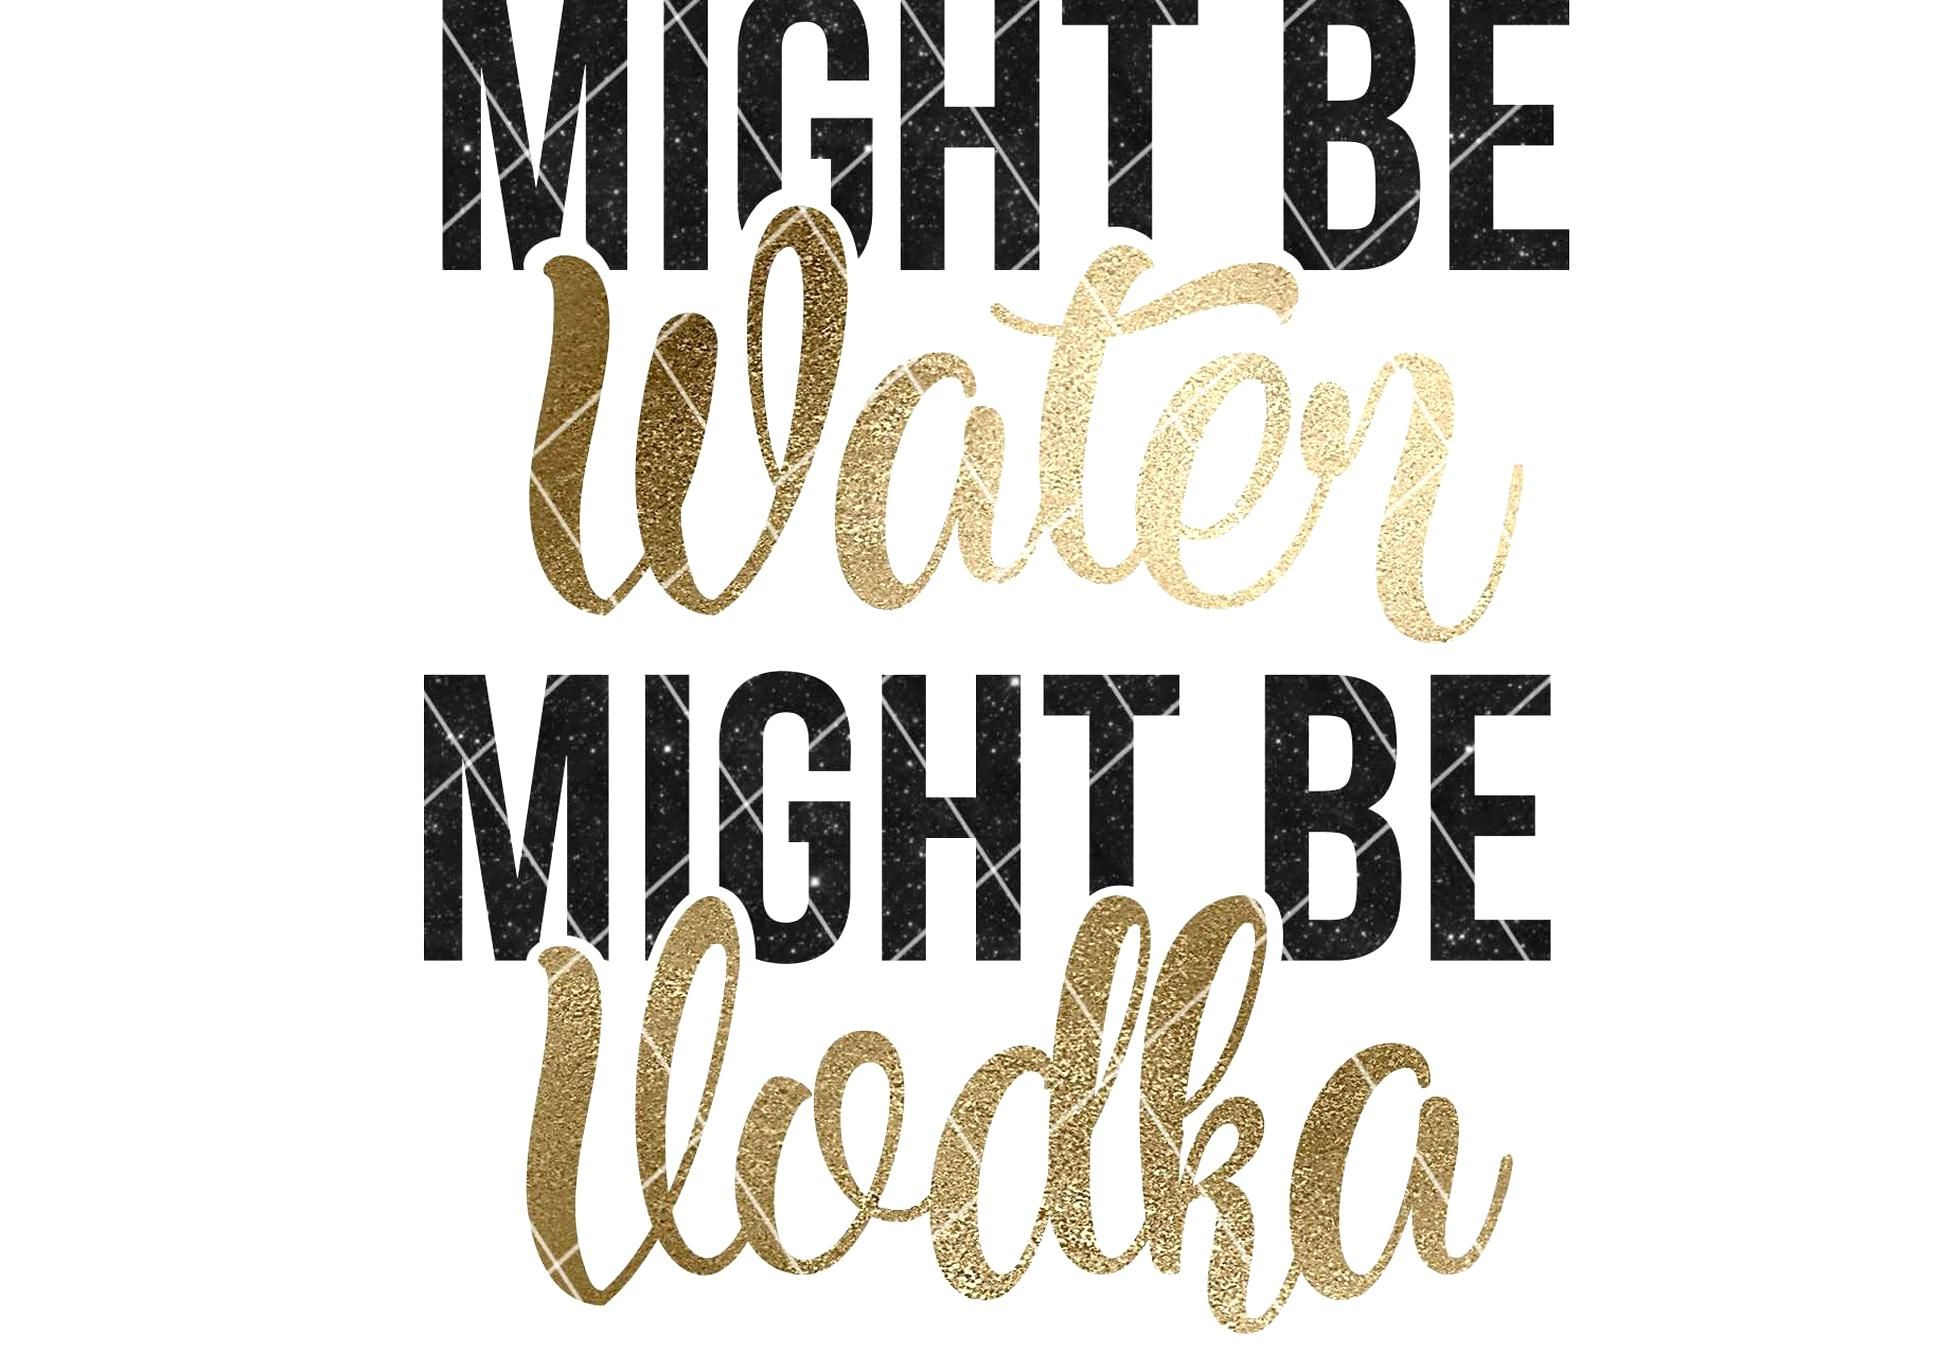 Pin By Abbigail Ellen On My Beautiful Collections In 2020 Funny Drinking Quotes Drinking Quotes Vodka Quotes